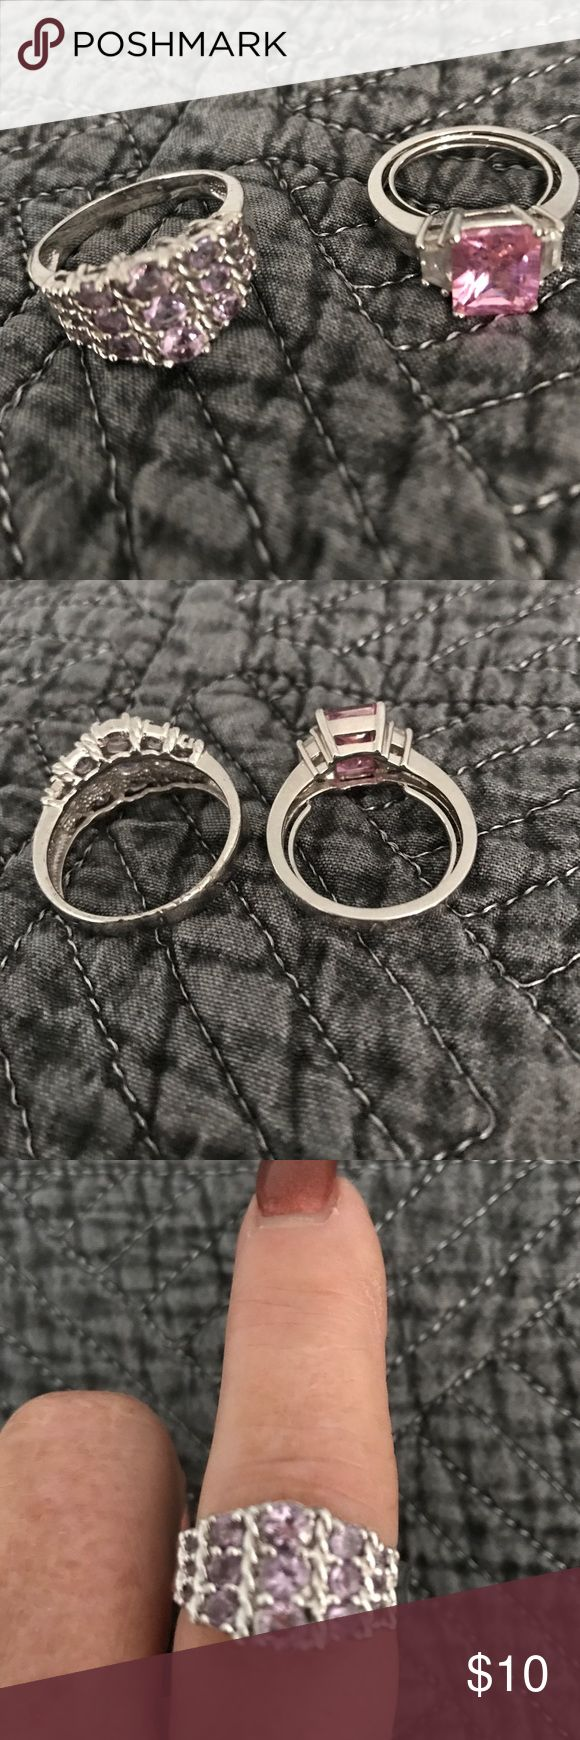 Set of two Pink Stone Rings Silver tone rings with pink stones one size 8 the multi stone is about a 9 NOW SPECIAL PRICE !!$5 Accessories